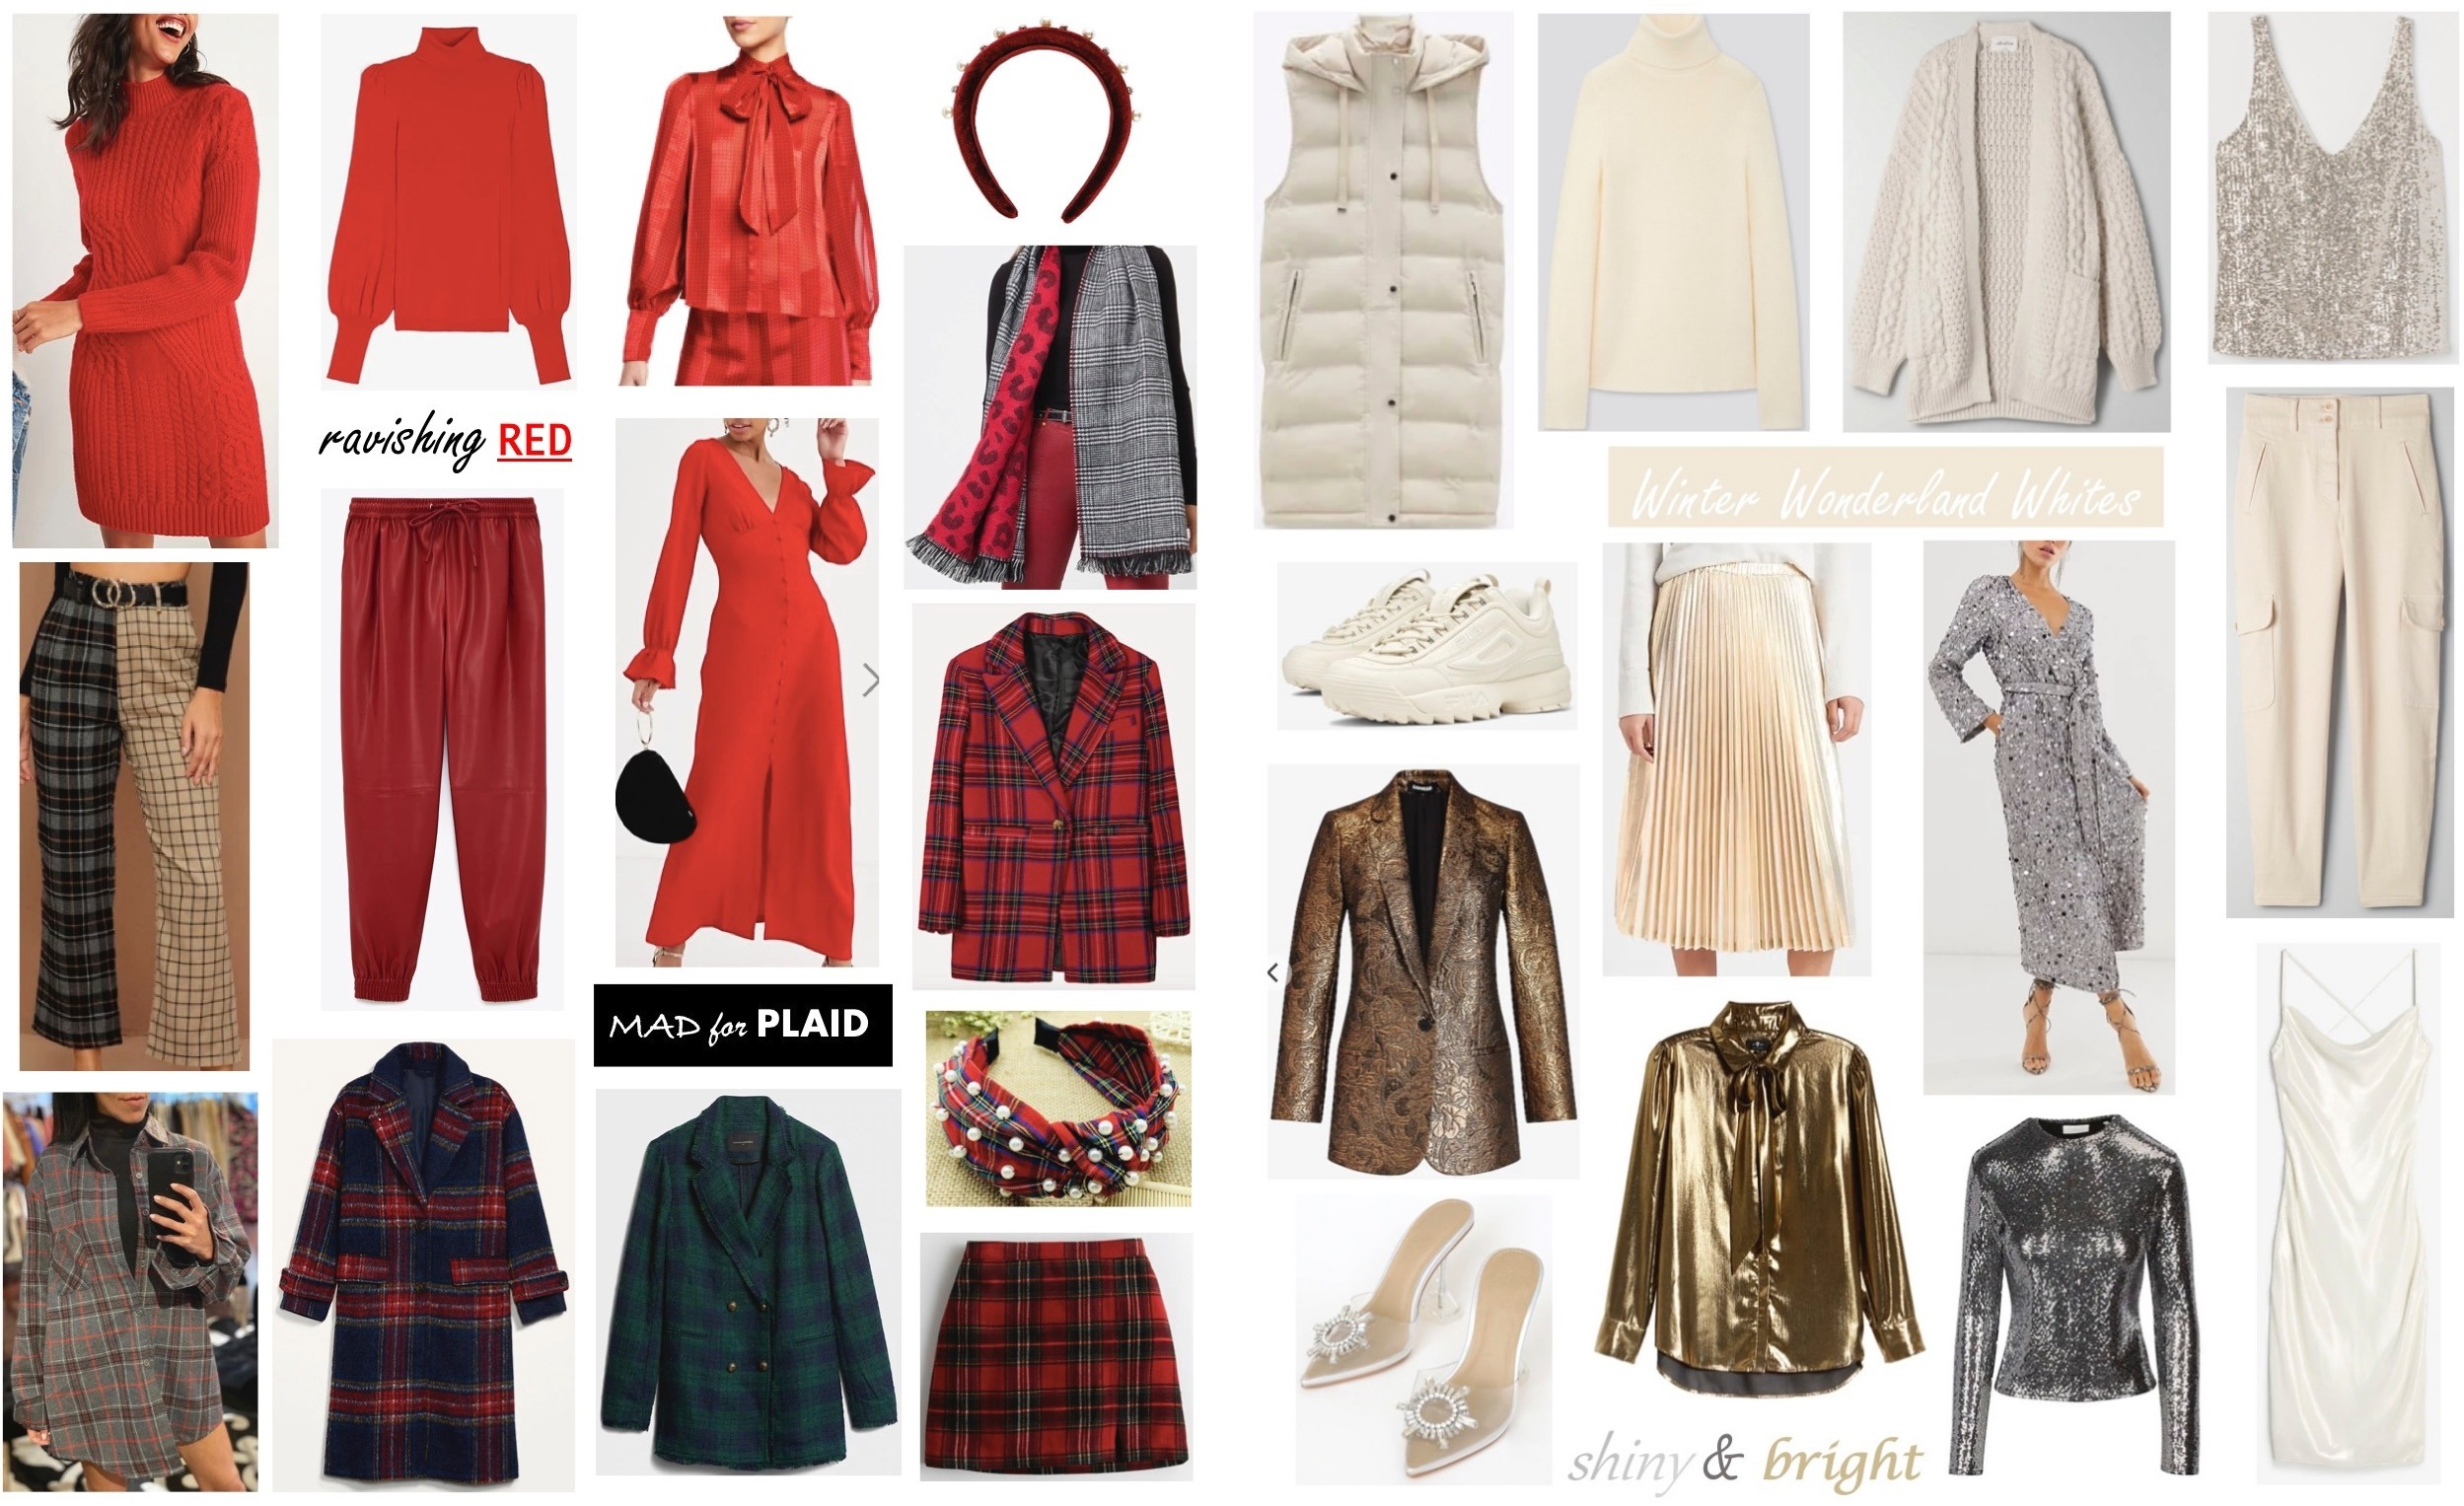 Winter Lookbook: But What Would I Wear?